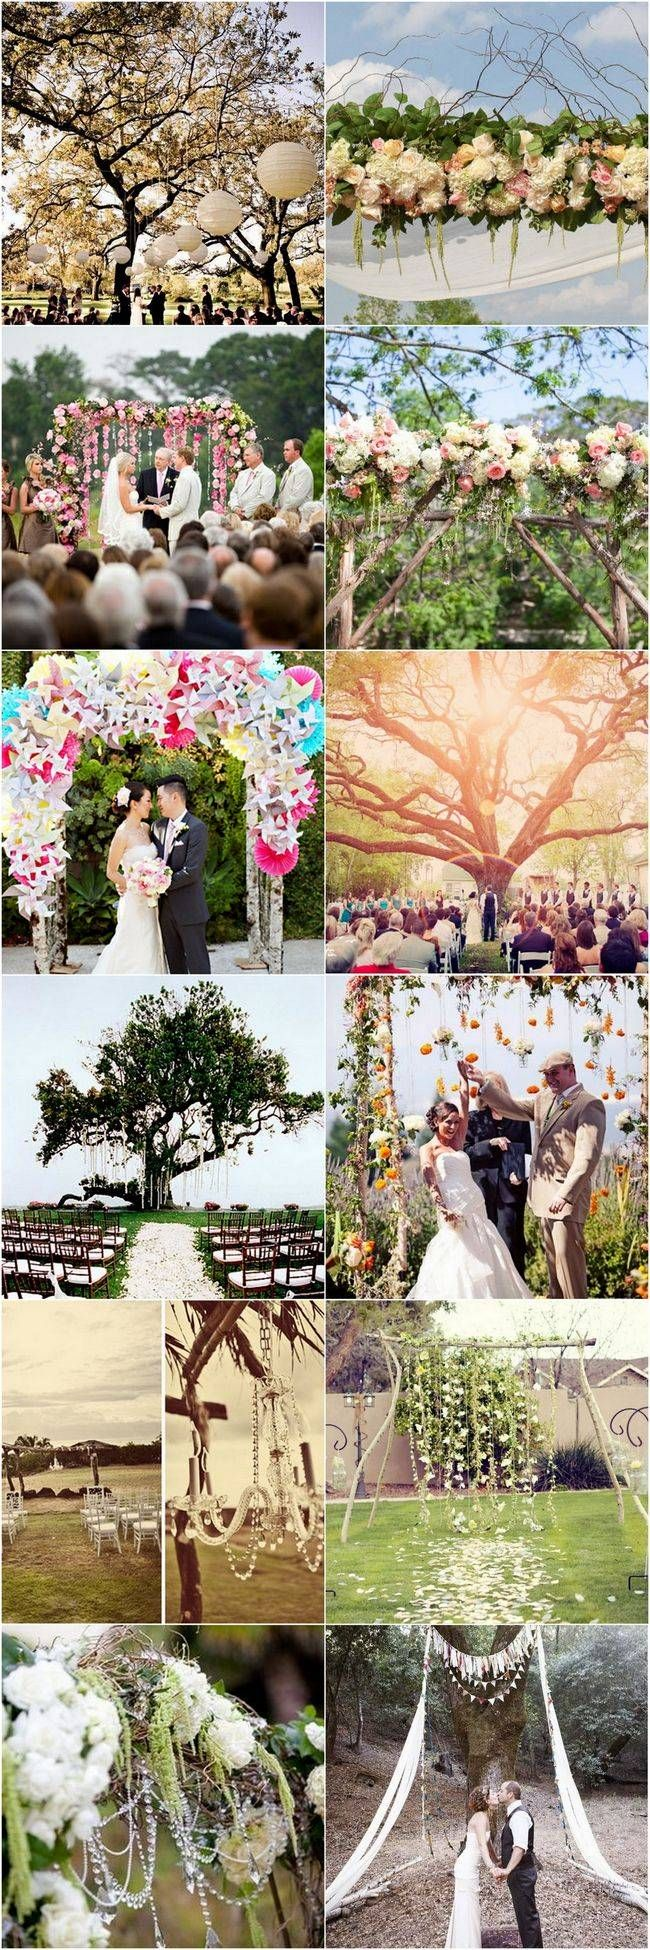 15 Wonderful Wedding Canopy & Arch IdeasConfetti Daydreams – Wedding Blog